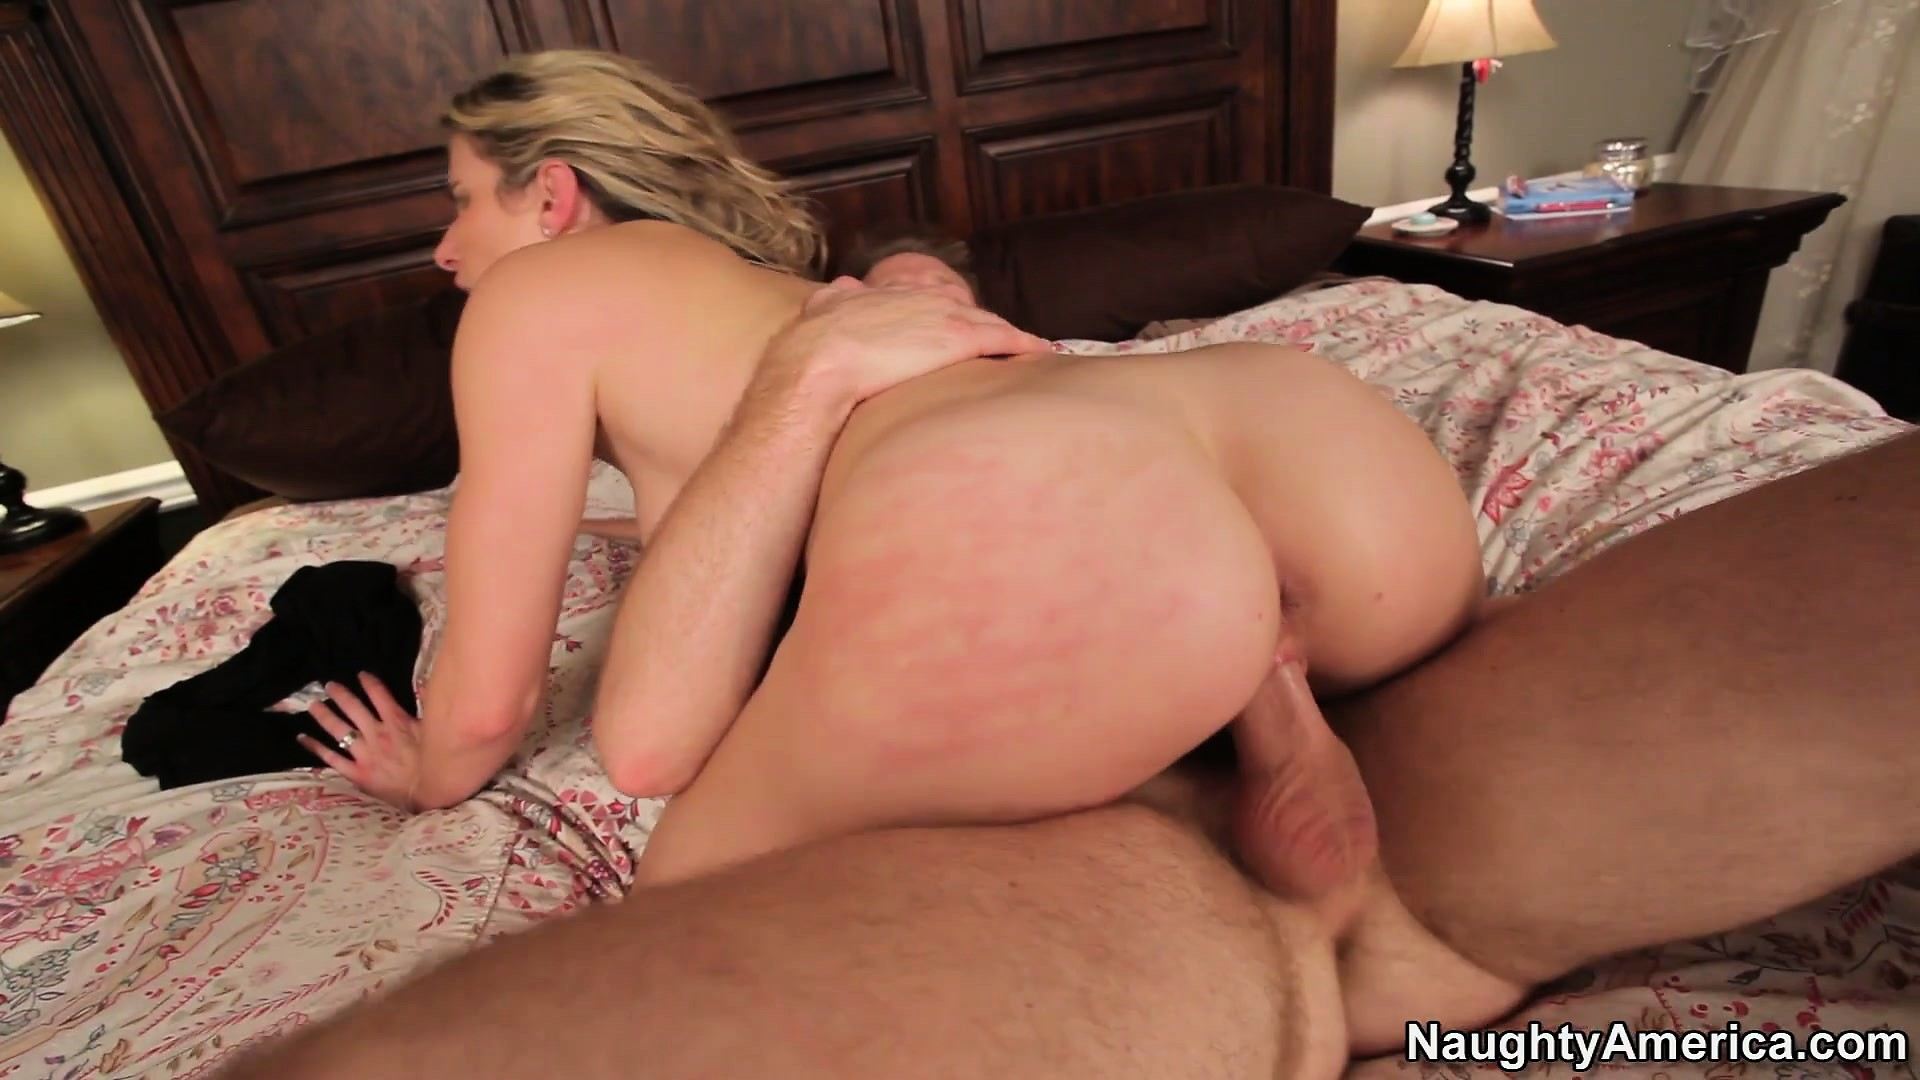 Porn Tube of Cory Chase Makes Sweet Sounds While She Gets Fucked By Her Co-star